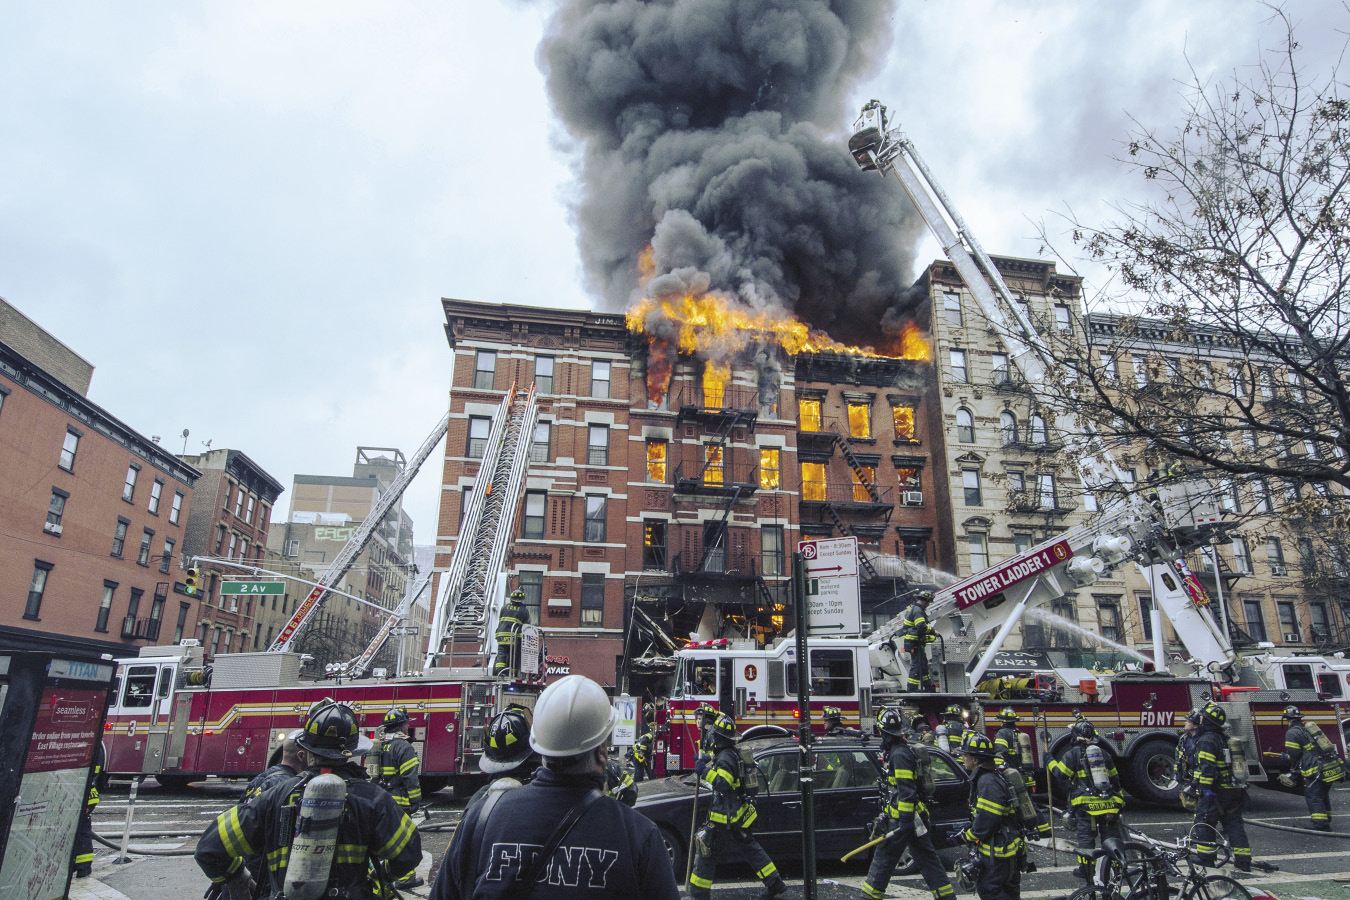 Firefighters fighting a blazing fire in an 5 story building in New York